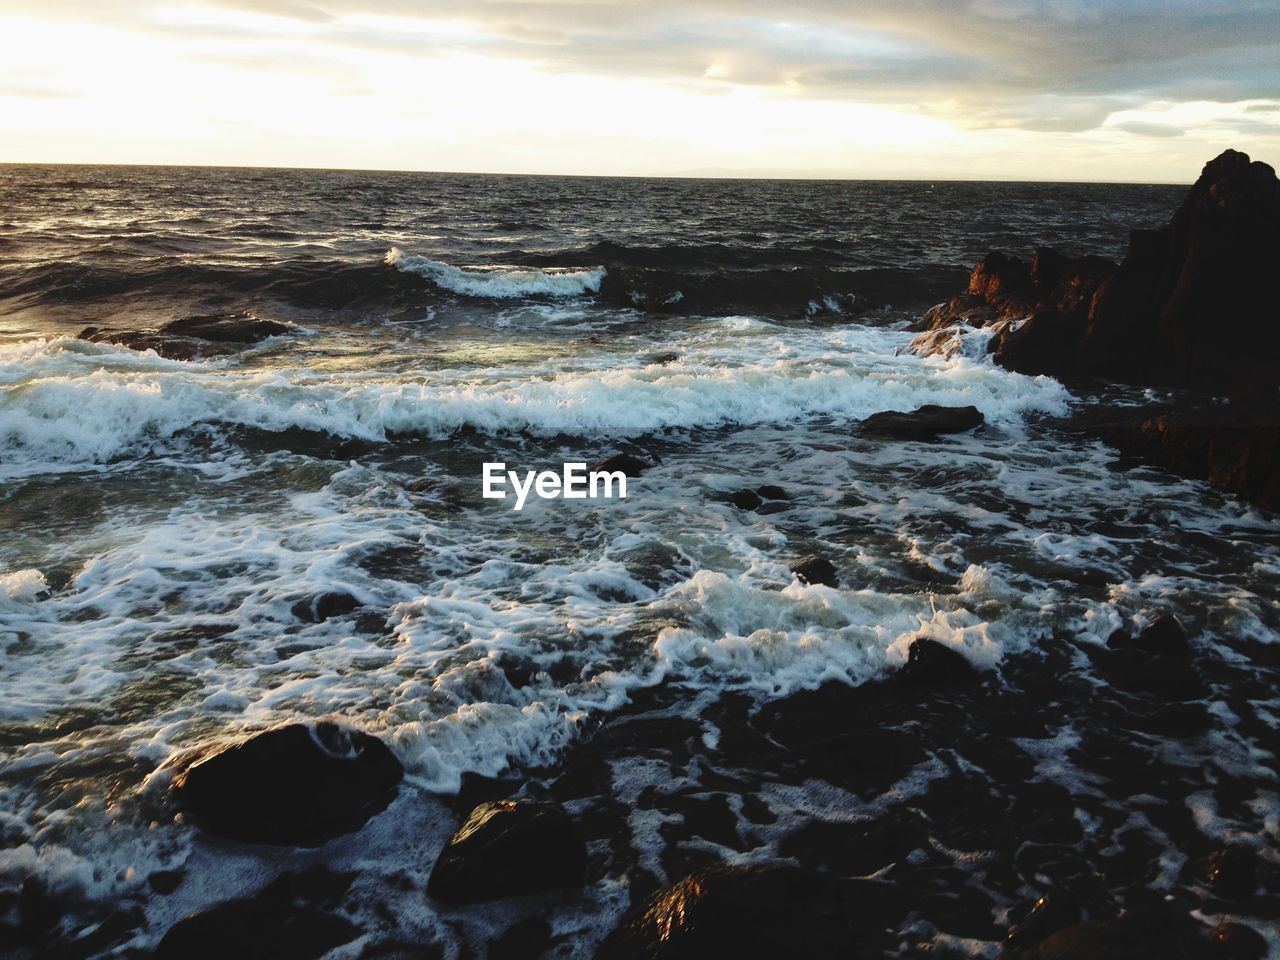 sea, water, nature, beauty in nature, rock - object, sunset, wave, horizon over water, scenics, tranquility, tranquil scene, beach, no people, sky, outdoors, motion, day, power in nature